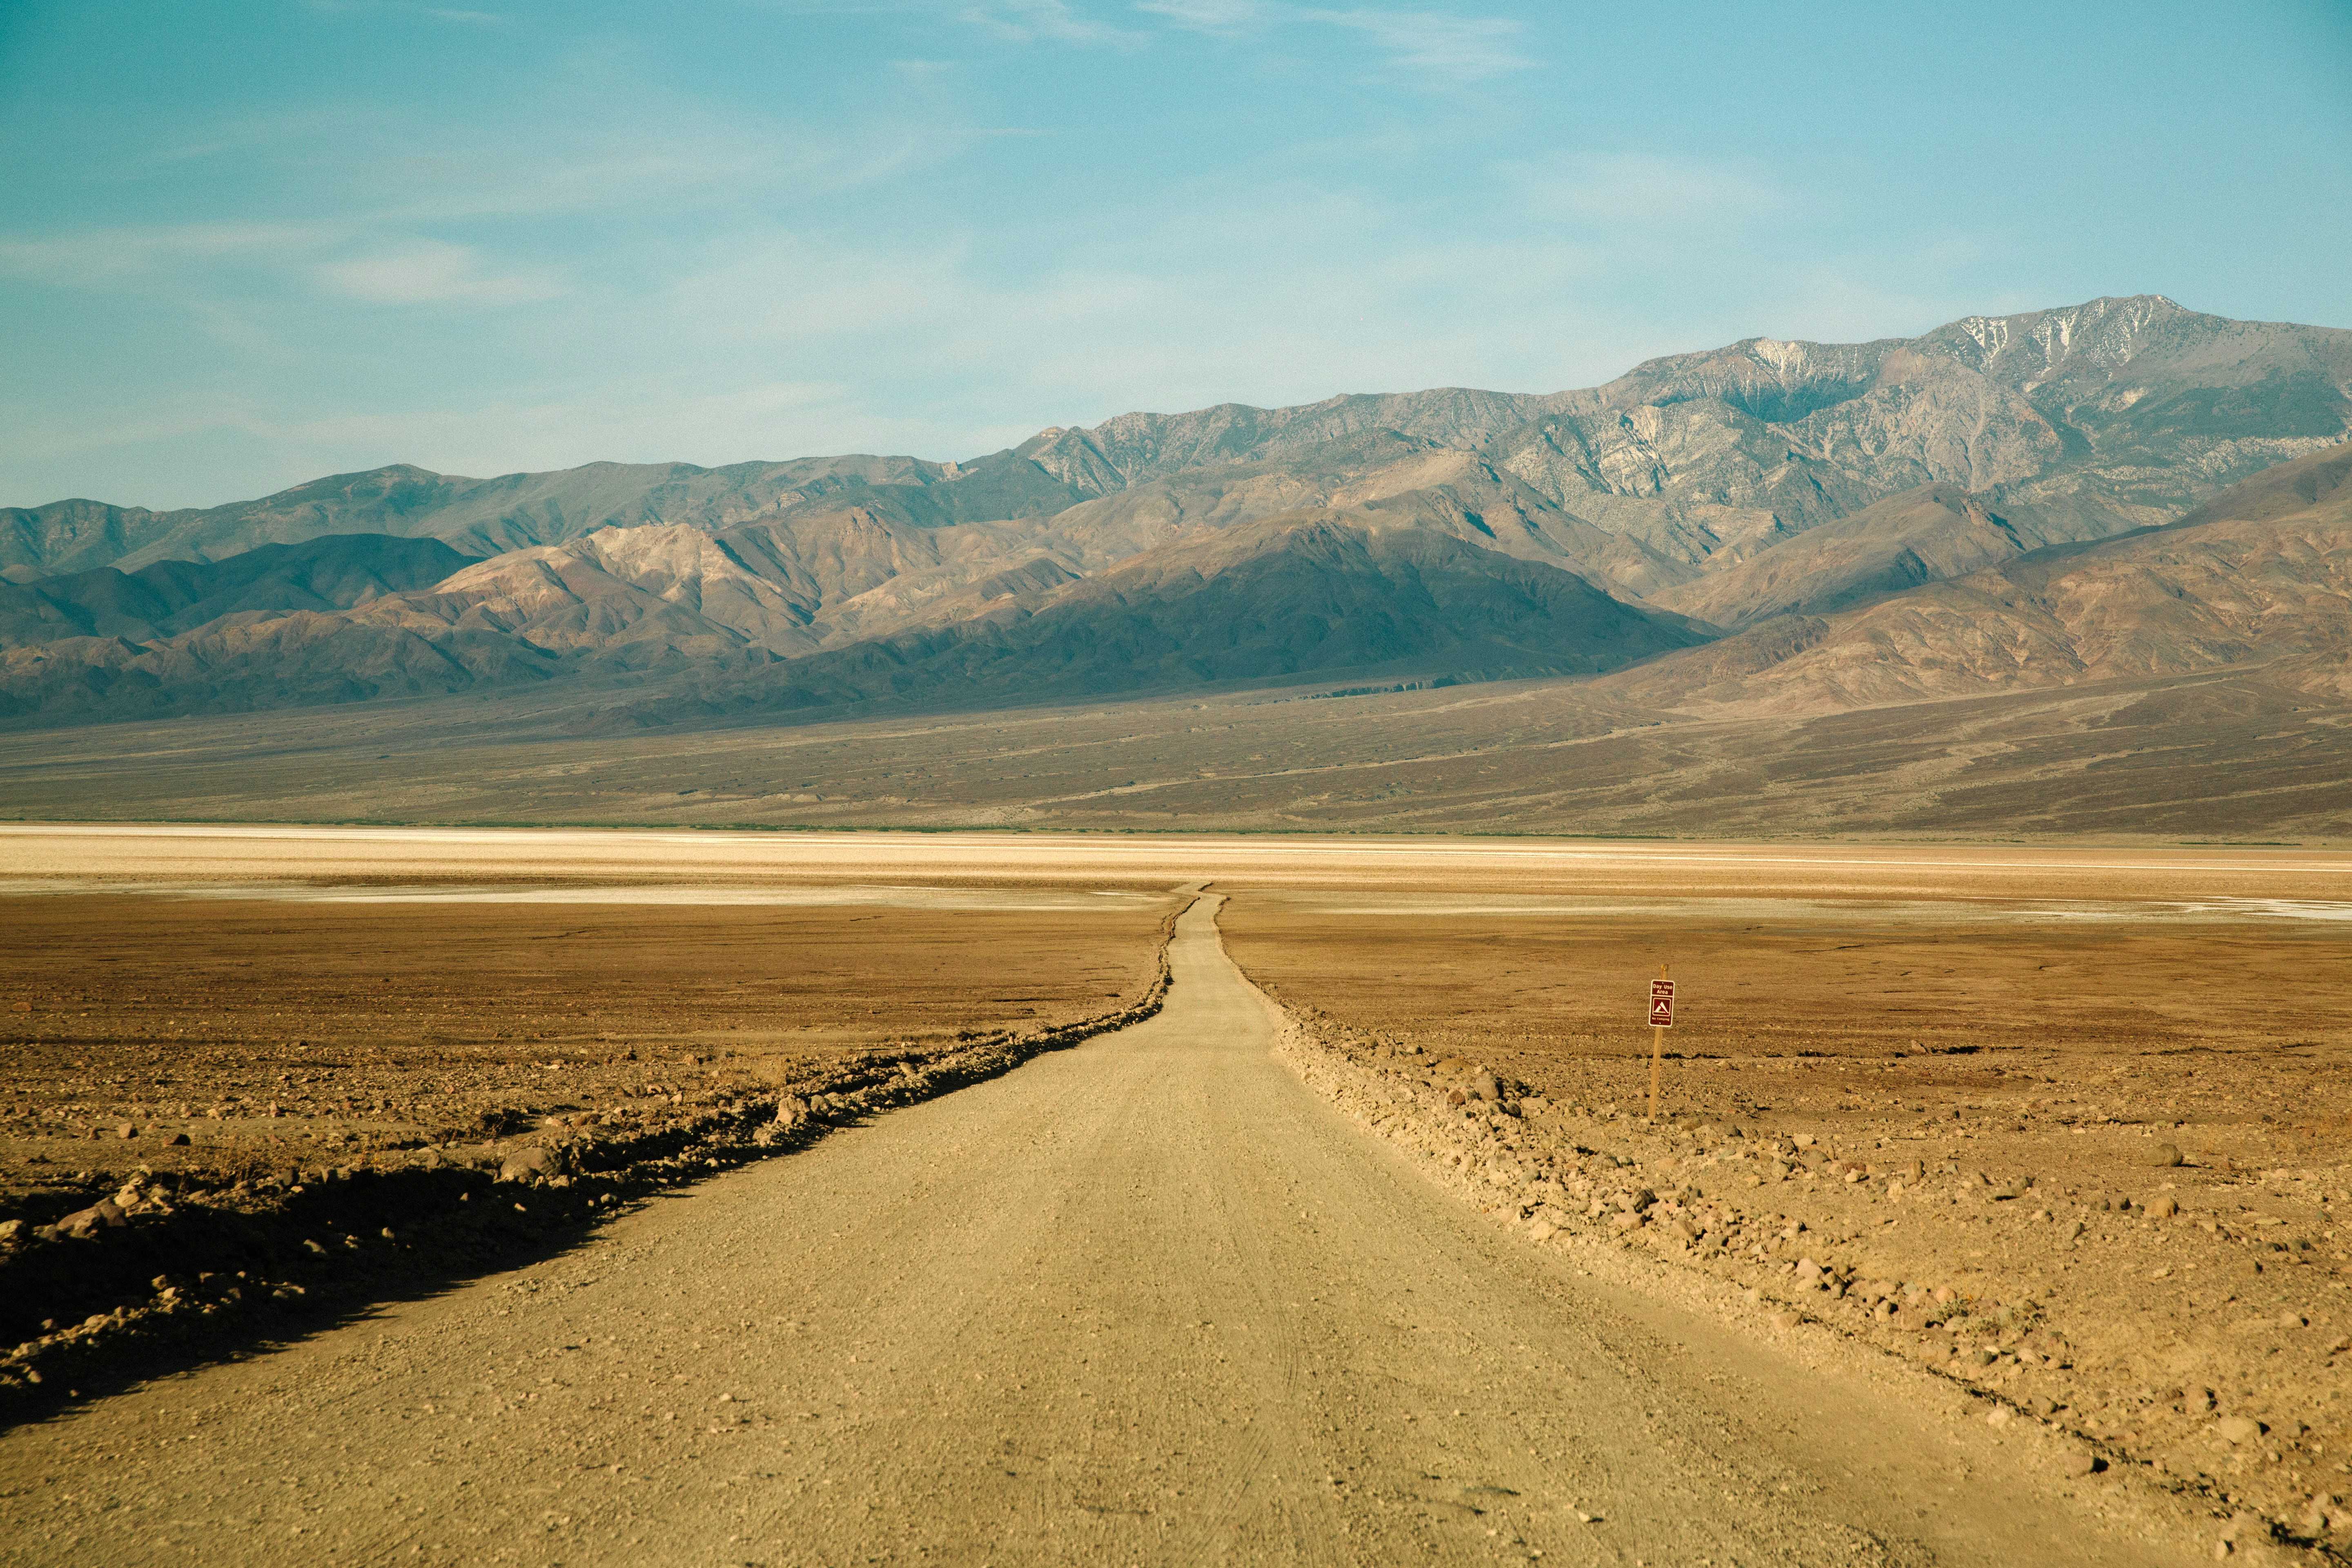 Roadway through the desert at Death Valley National Park, Nevada.